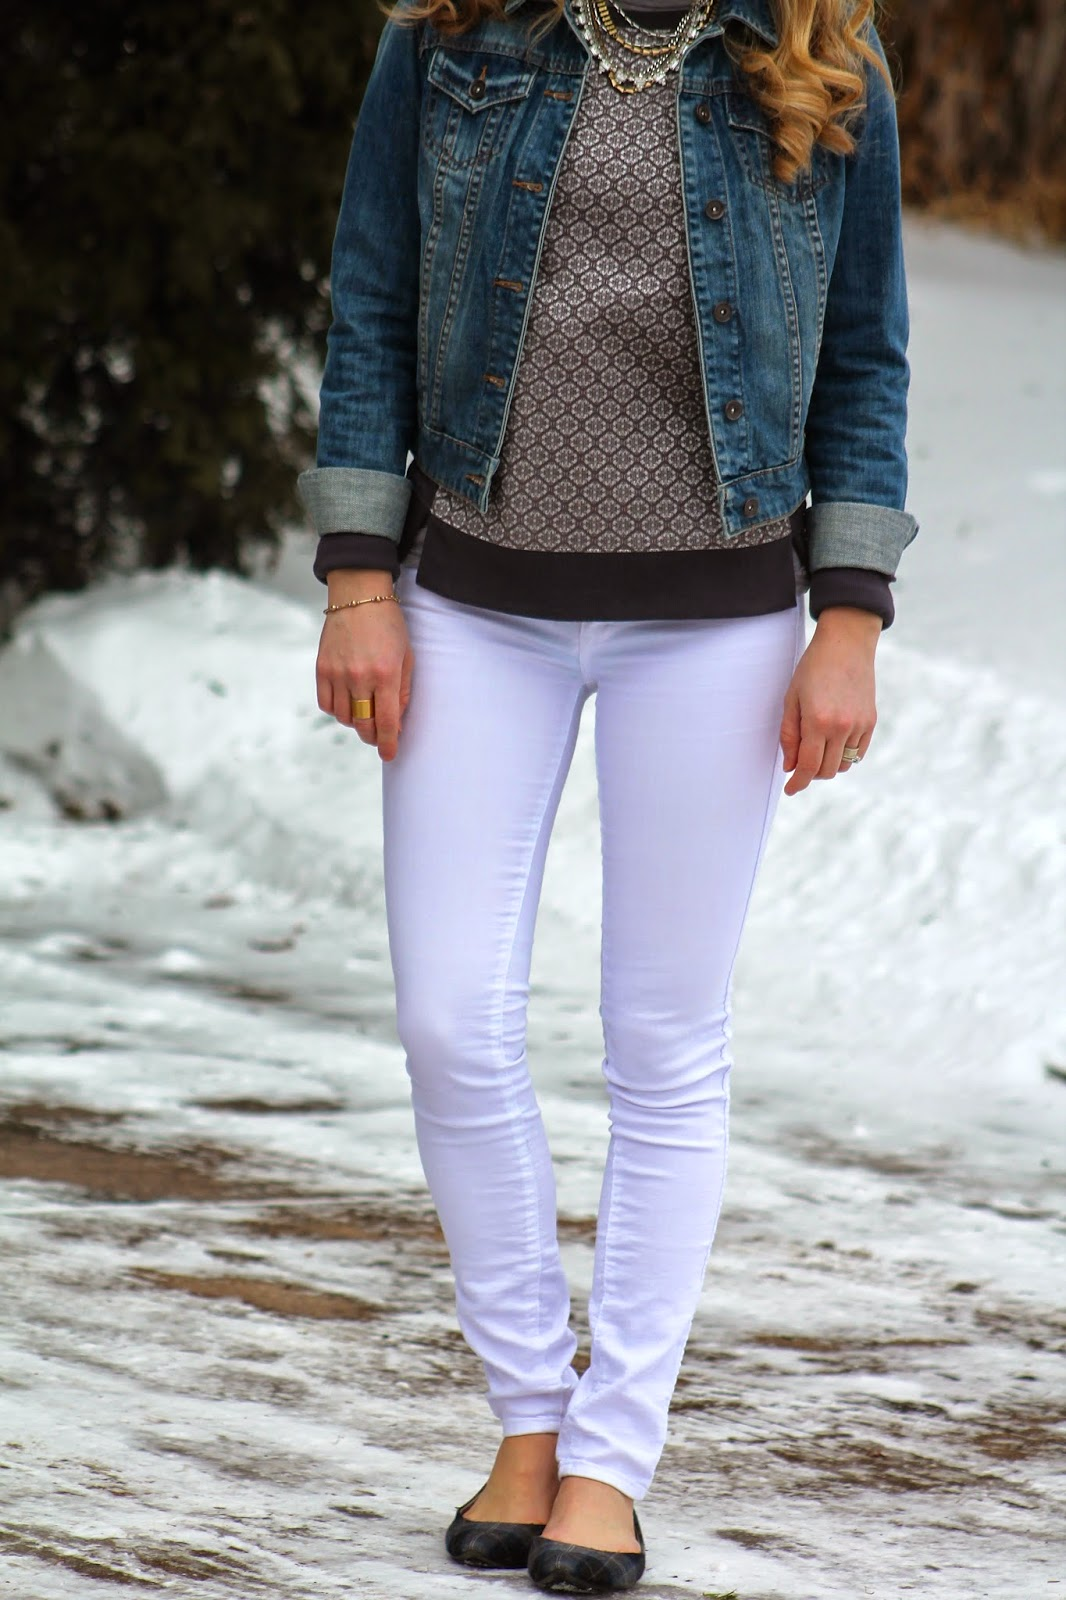 denim jacket, Loft sweatshirt, and white jeans